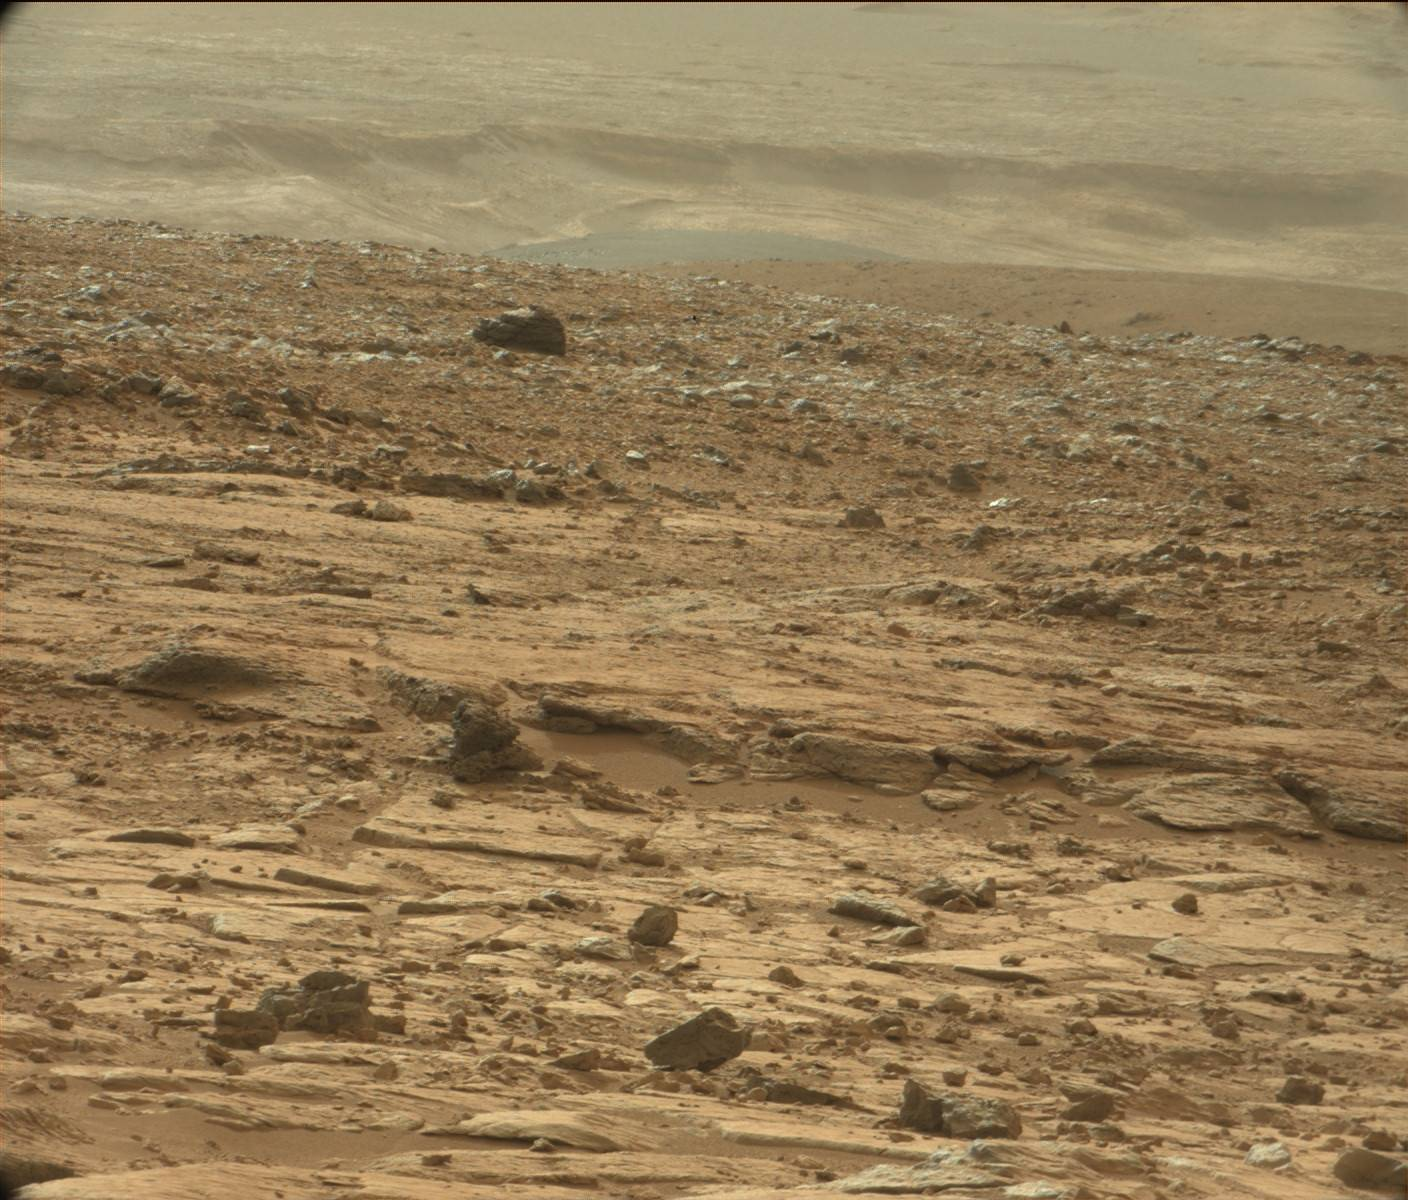 nasa finds message from god on mars - HD1408×1200